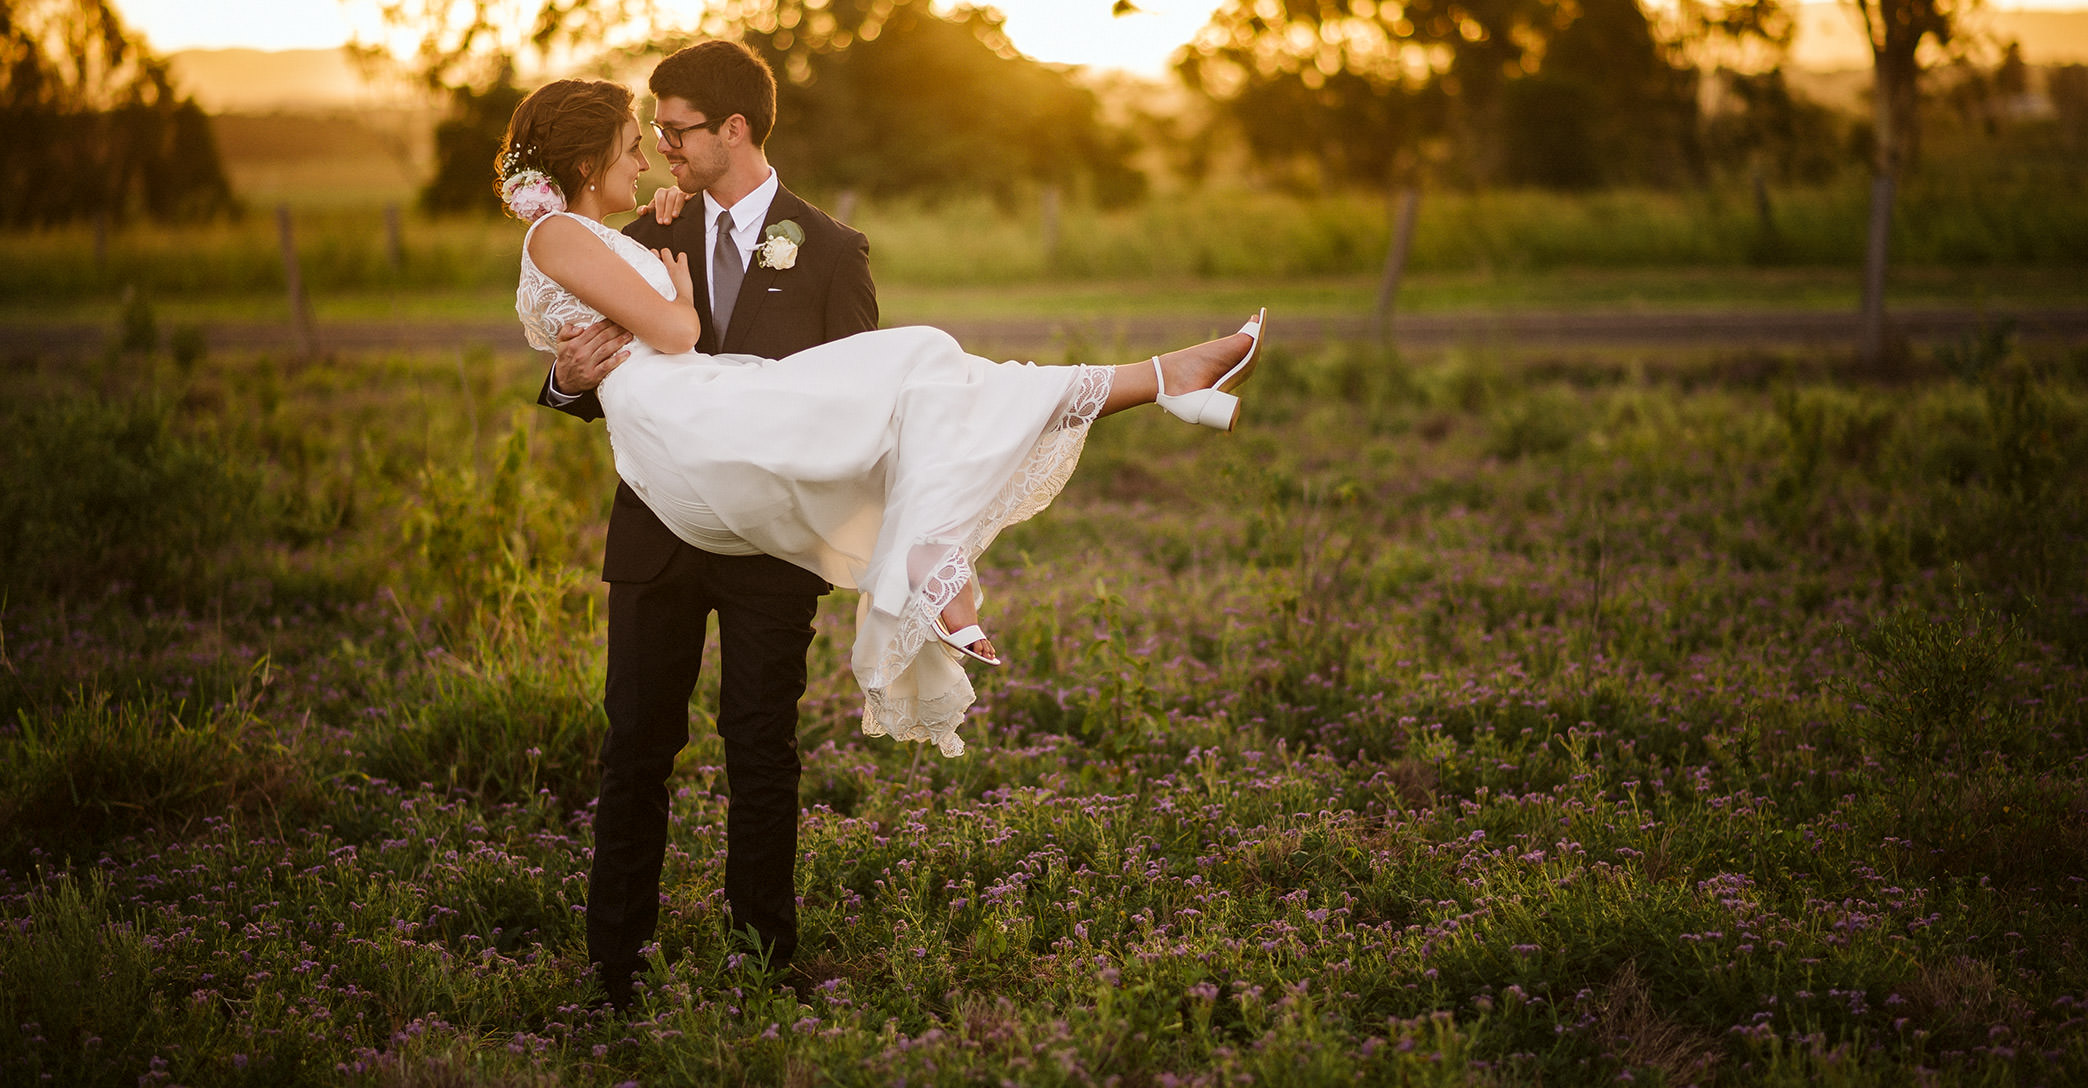 Groom carrying Bride at Sunset